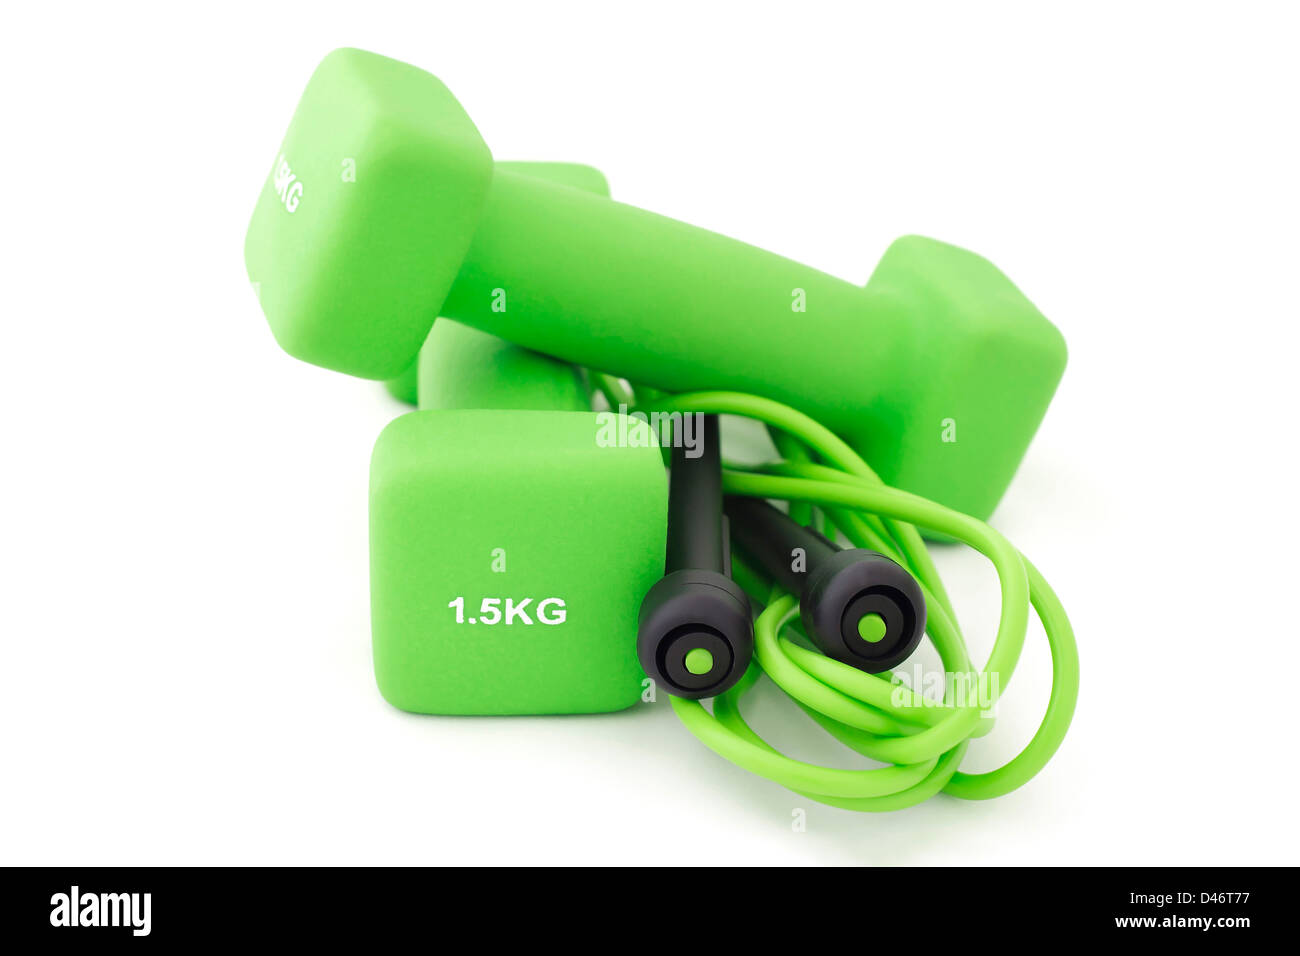 Green 1.5 kg dumbbells and skipping rope for a fitness training - Stock Image